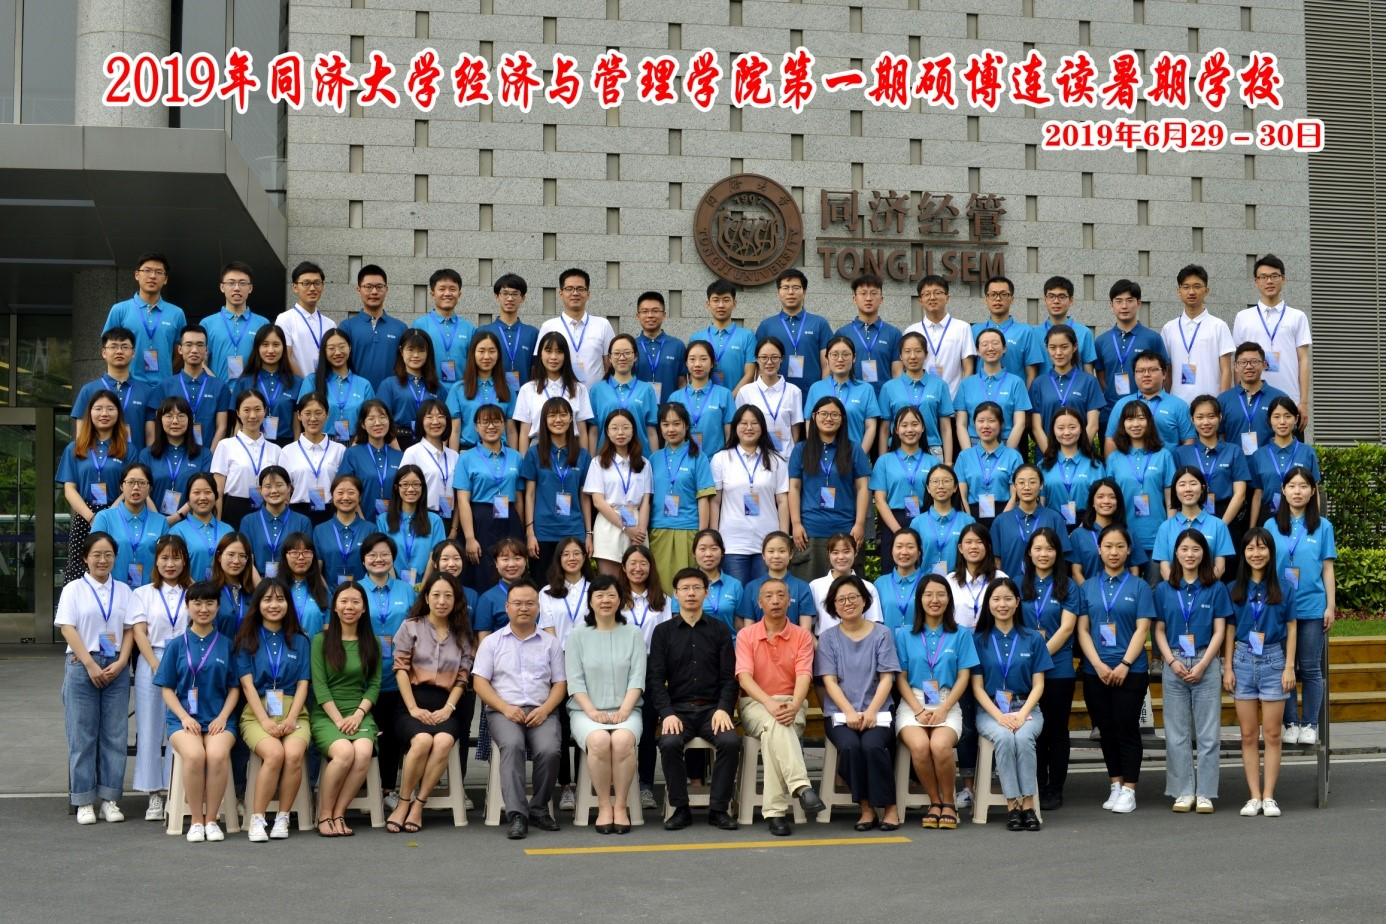 2019 Tongji SEM First Summer School of Successive Postgraduate and Doctor Program Concluded Successfully